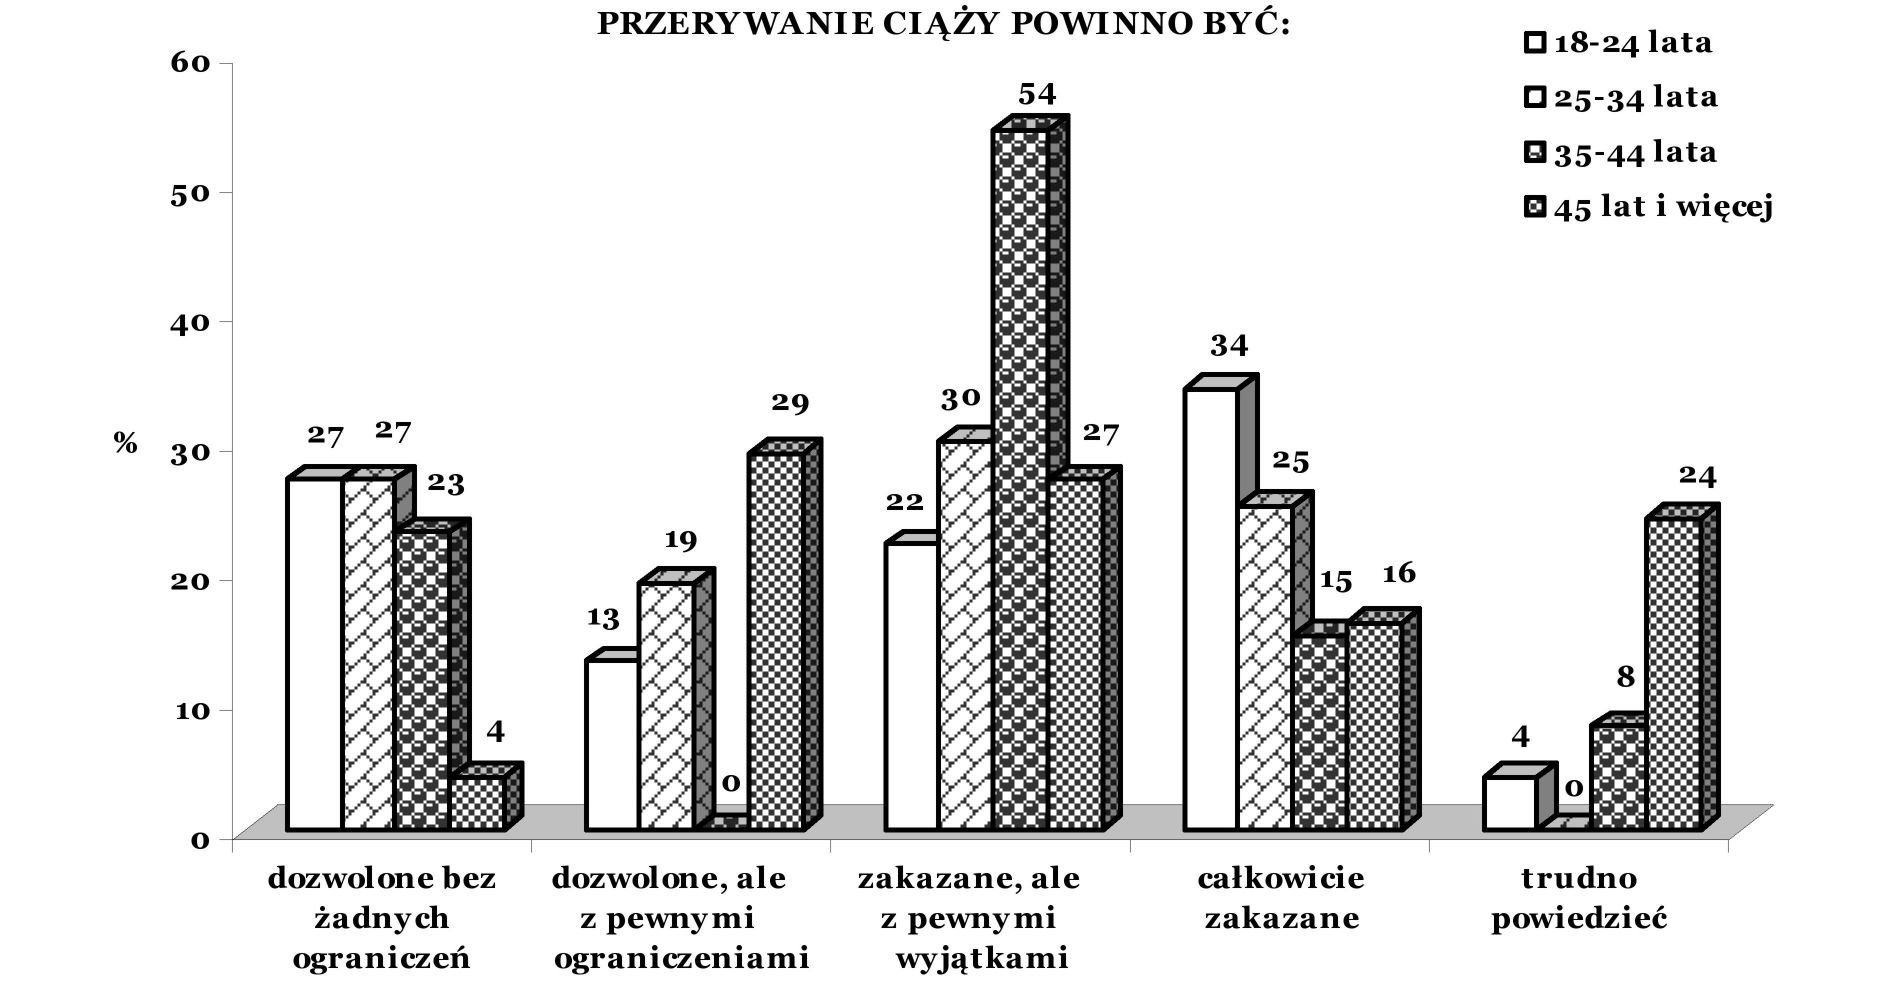 Percentage of respondents about the opinion of abortion depending on the age (n=311) go co dziewiąty uważał, że powinna ona być całkowicie dozwolona, a co trzeci, że częściowo ograniczona.